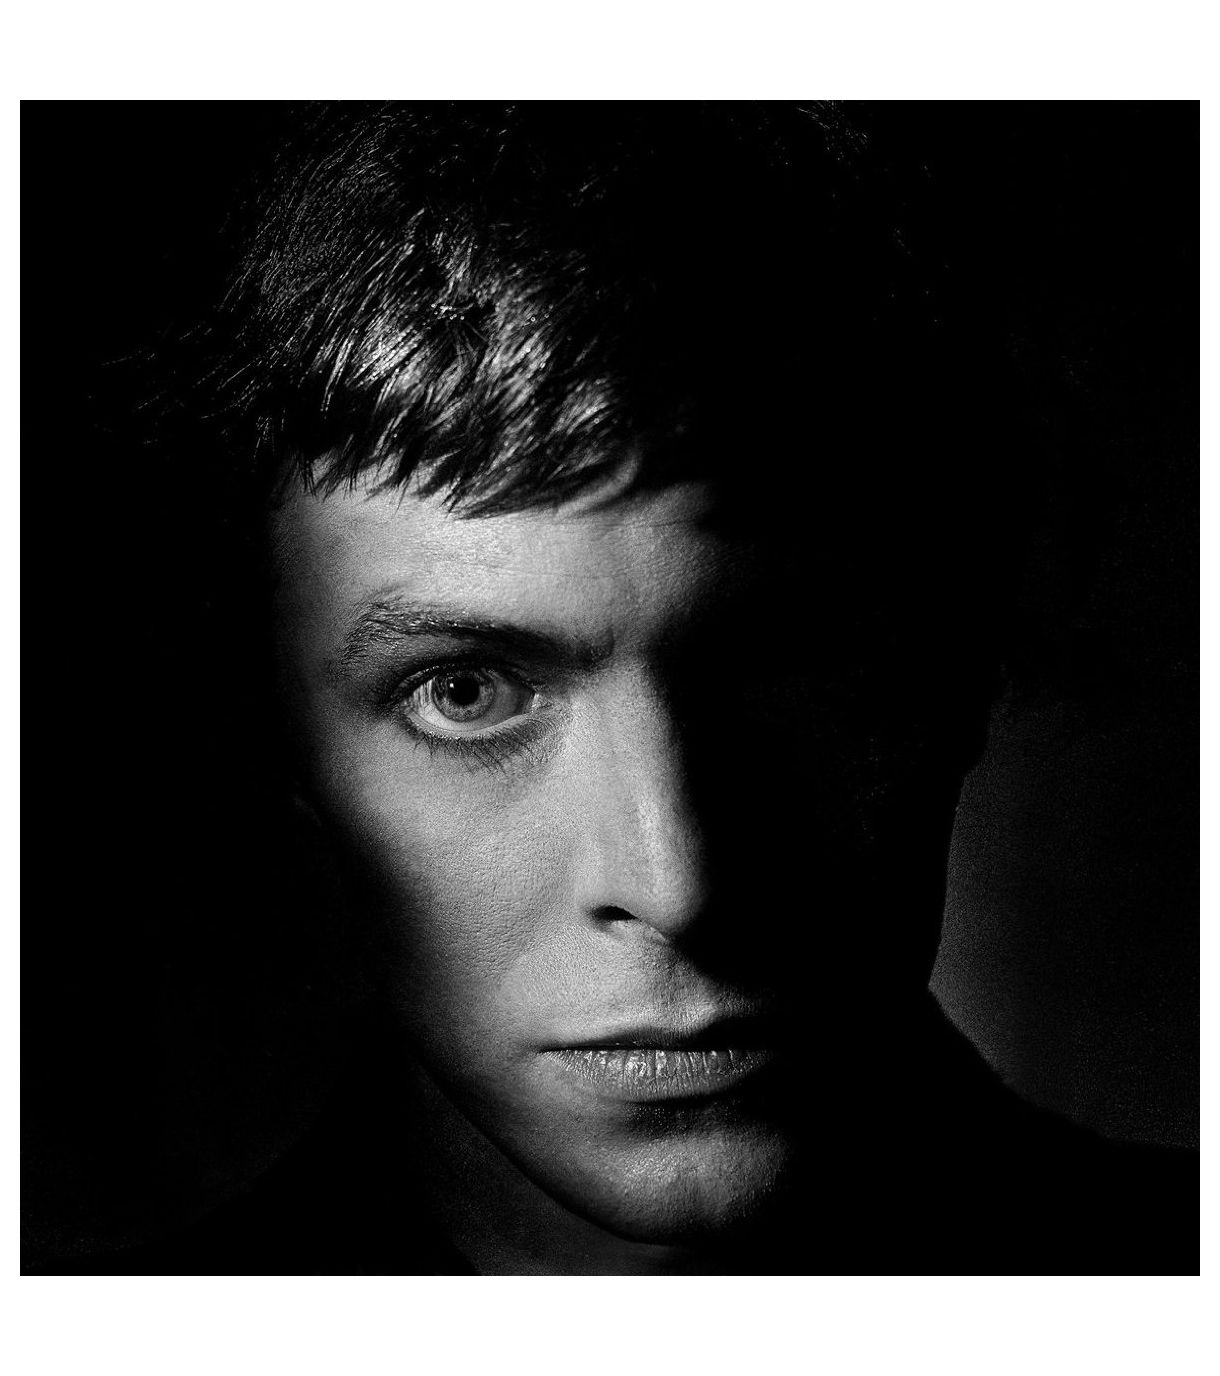 david-bowie-from-the-shadows-photo-clive-arrowsmith.jpg (1220×1376)